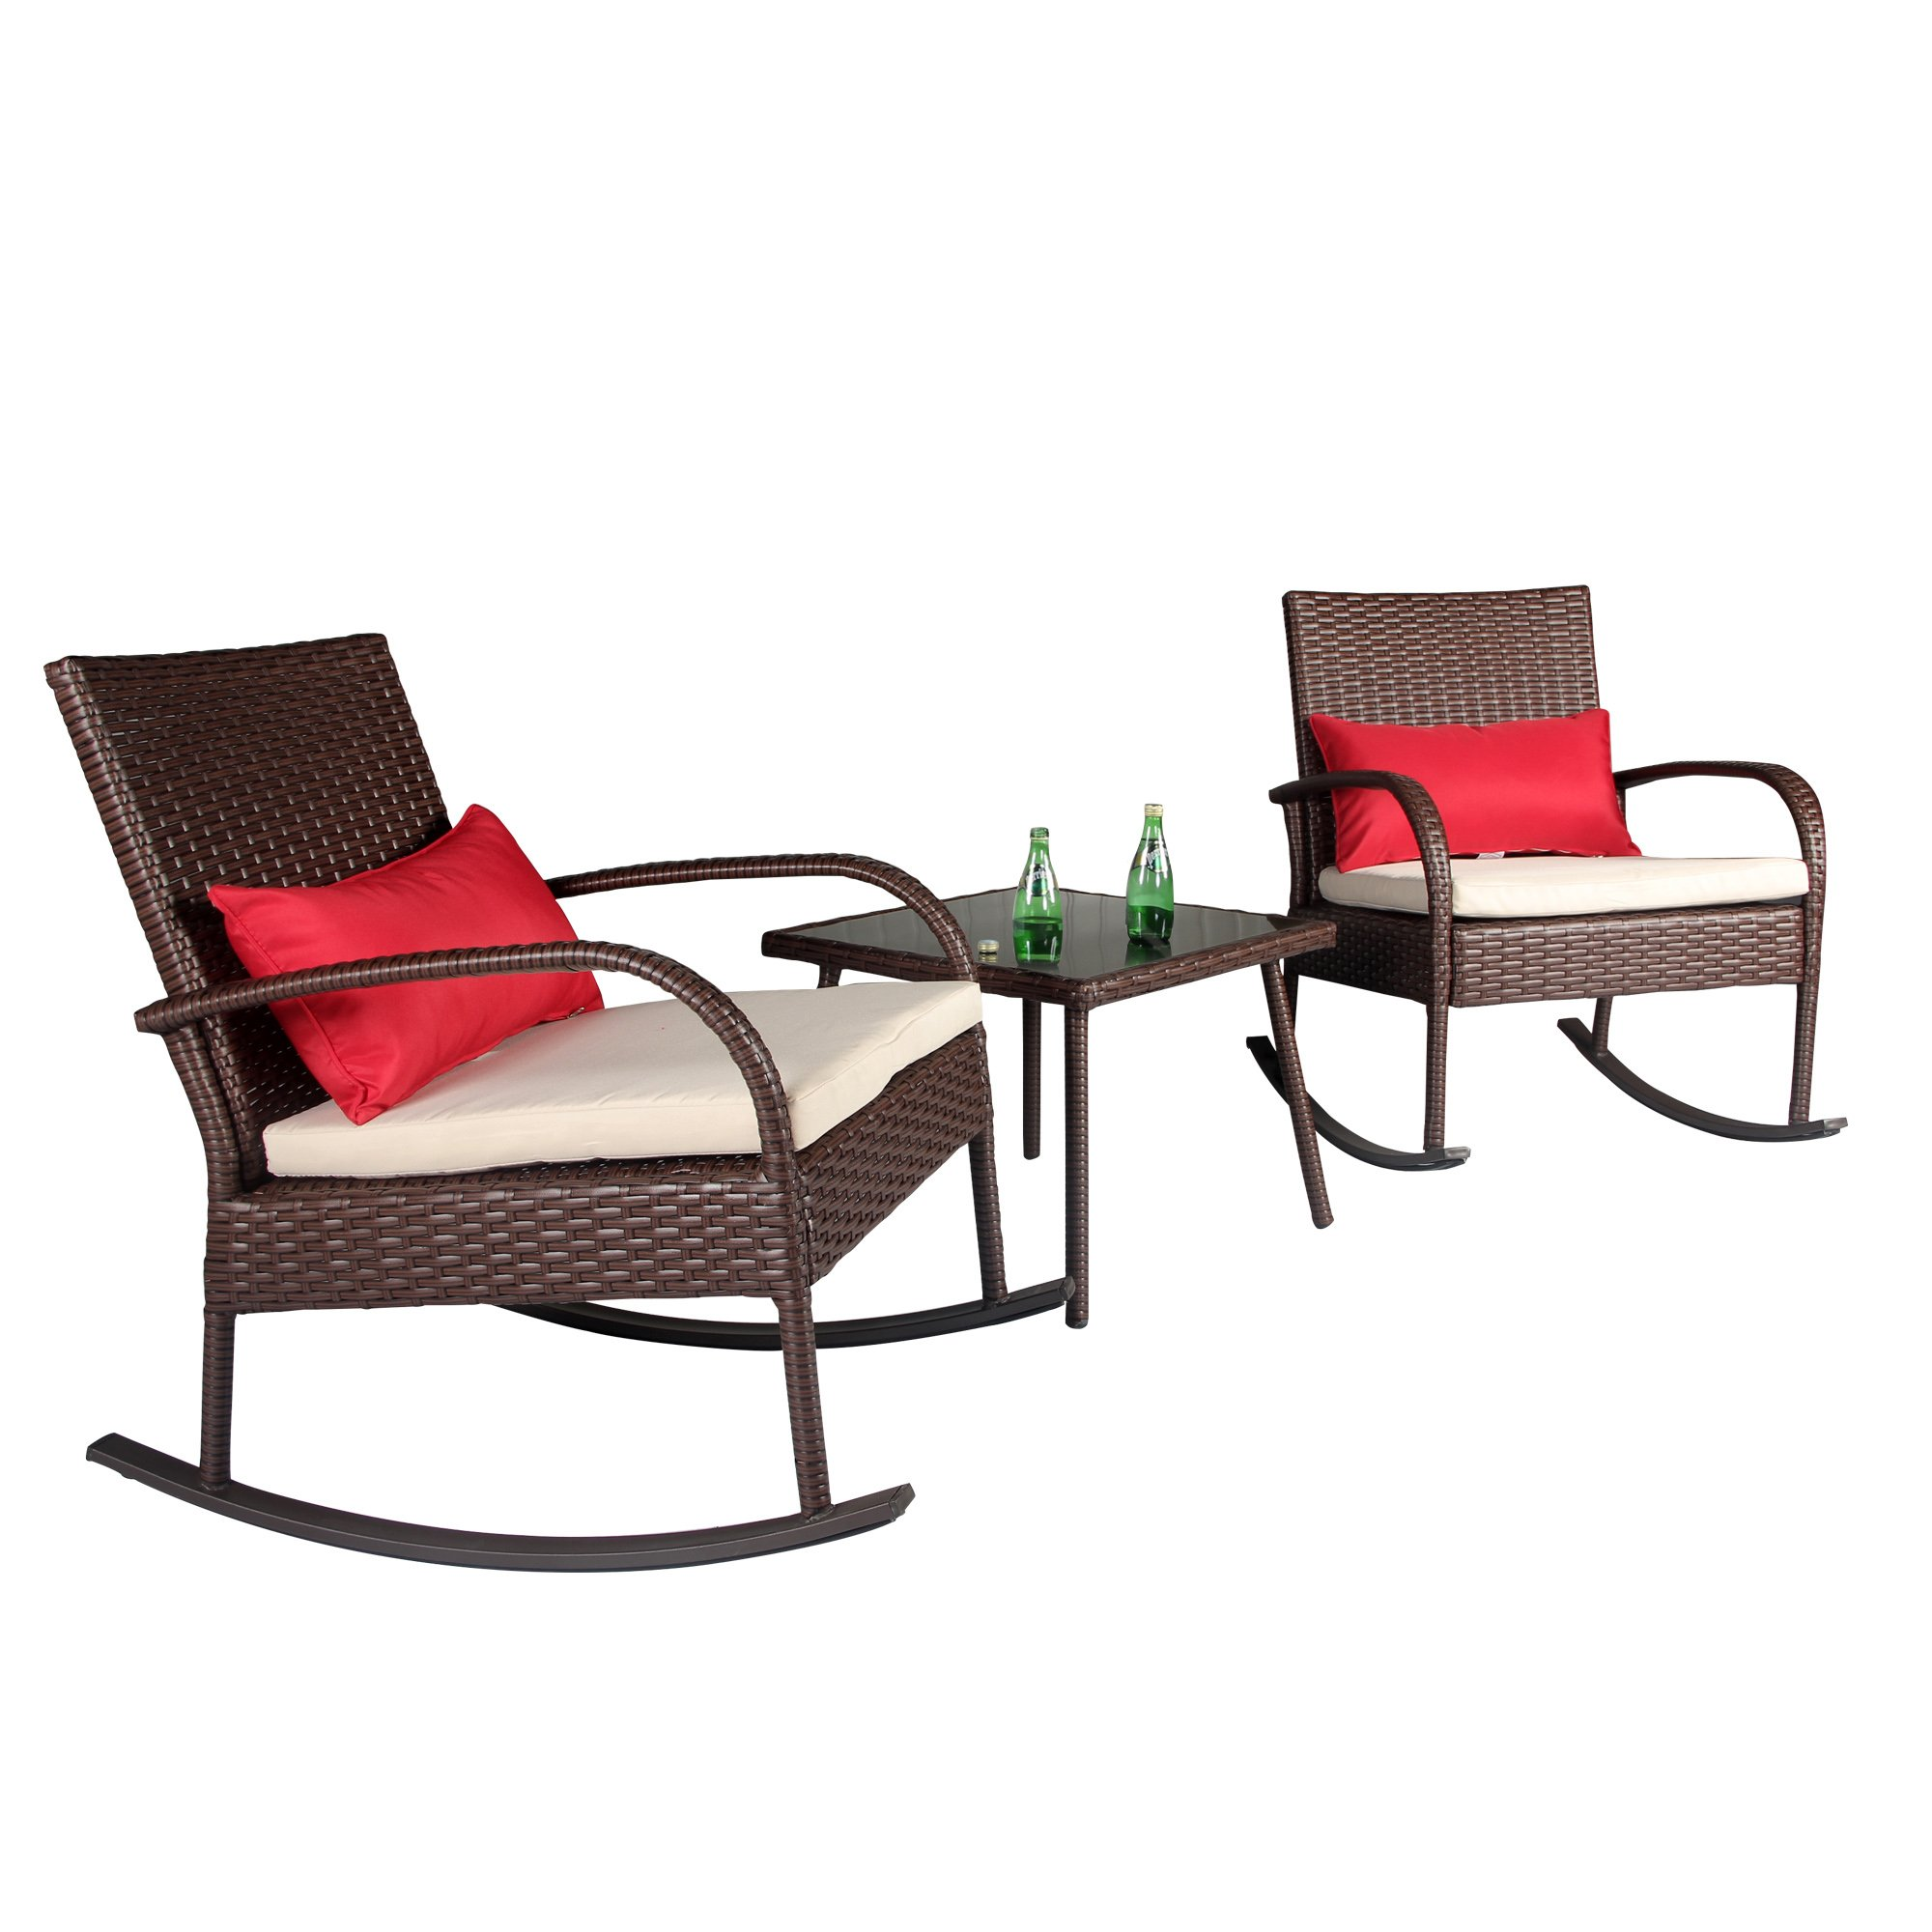 Cloud Mountain Outdoor 3 Piece Rocking Chair Set Wicker Rattan Bistro Set Wicker Furniture - Two Chairs with Glass Coffee Table, Creamy White Cushion with Cocoa Brown Rattan